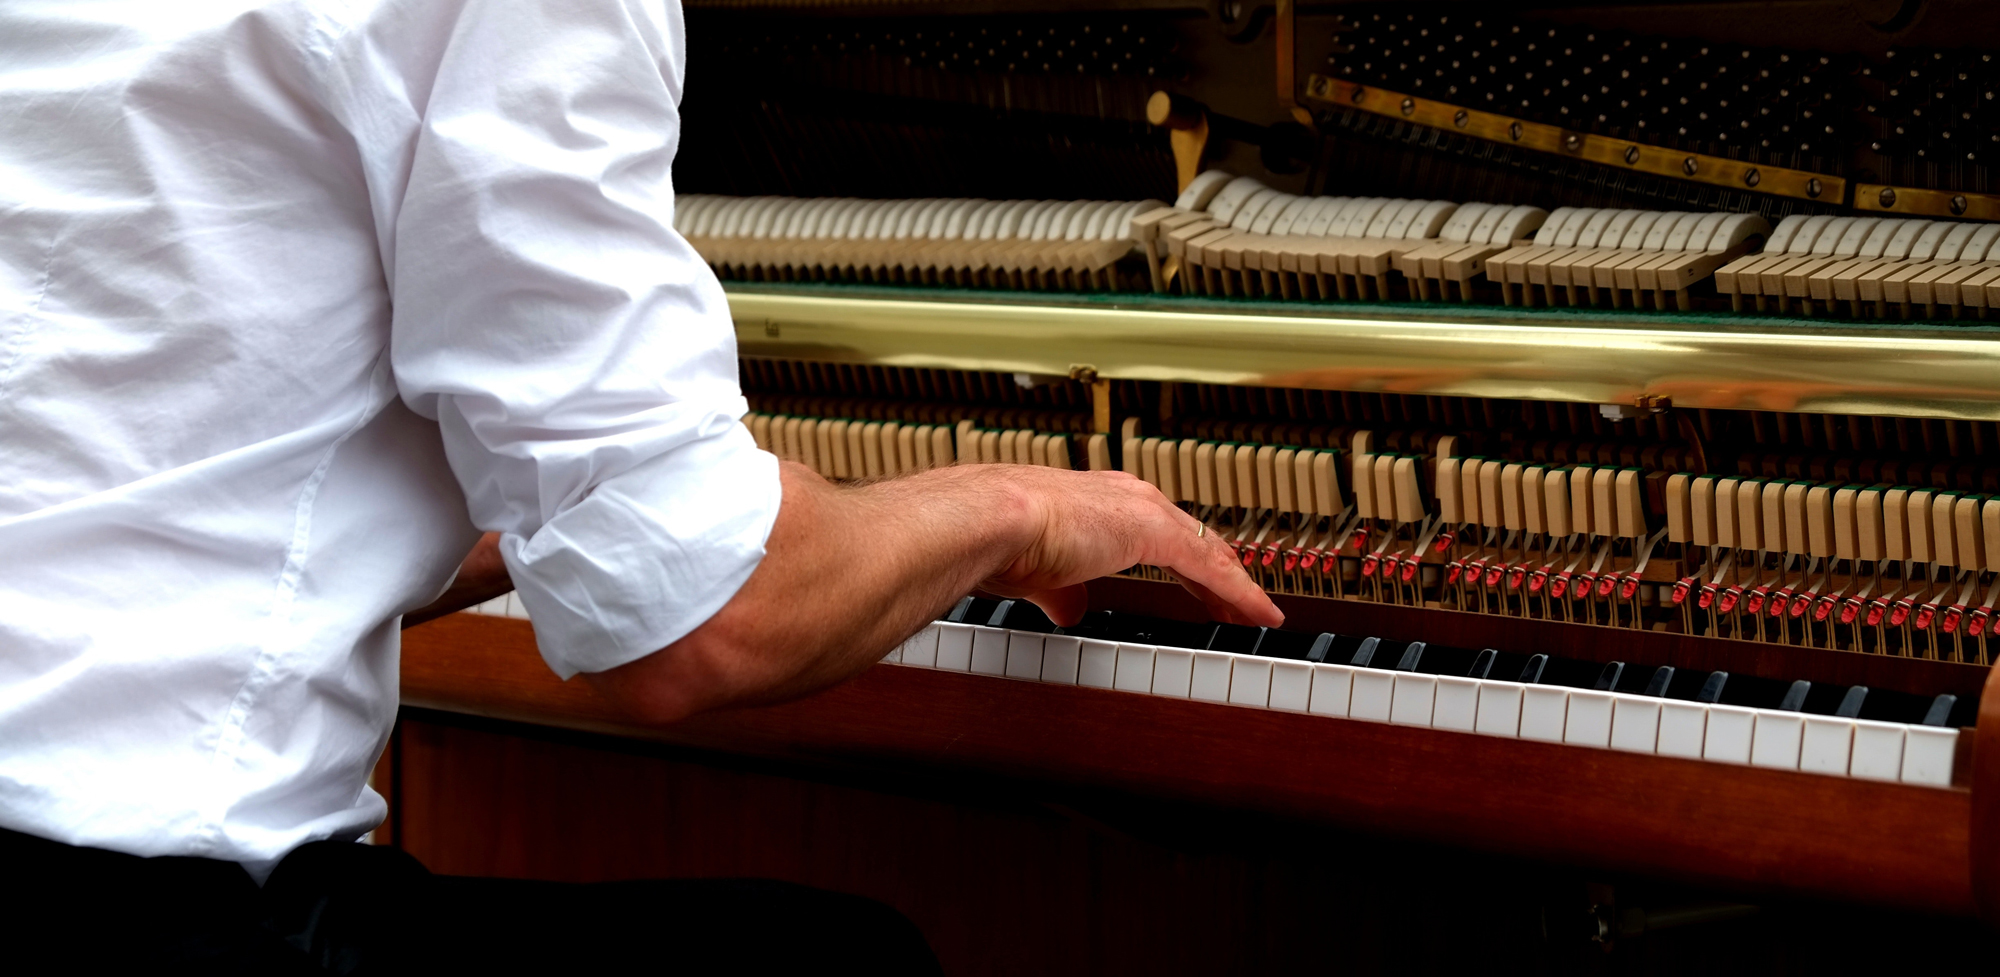 How does a piano work?